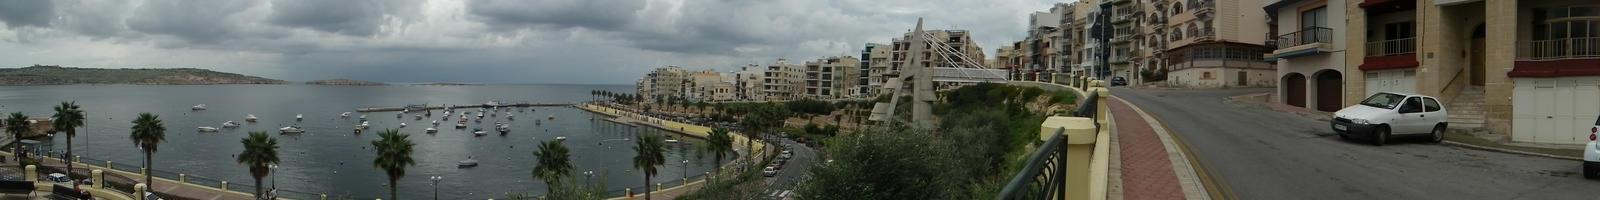 pano from a maltese hotel by boybeck